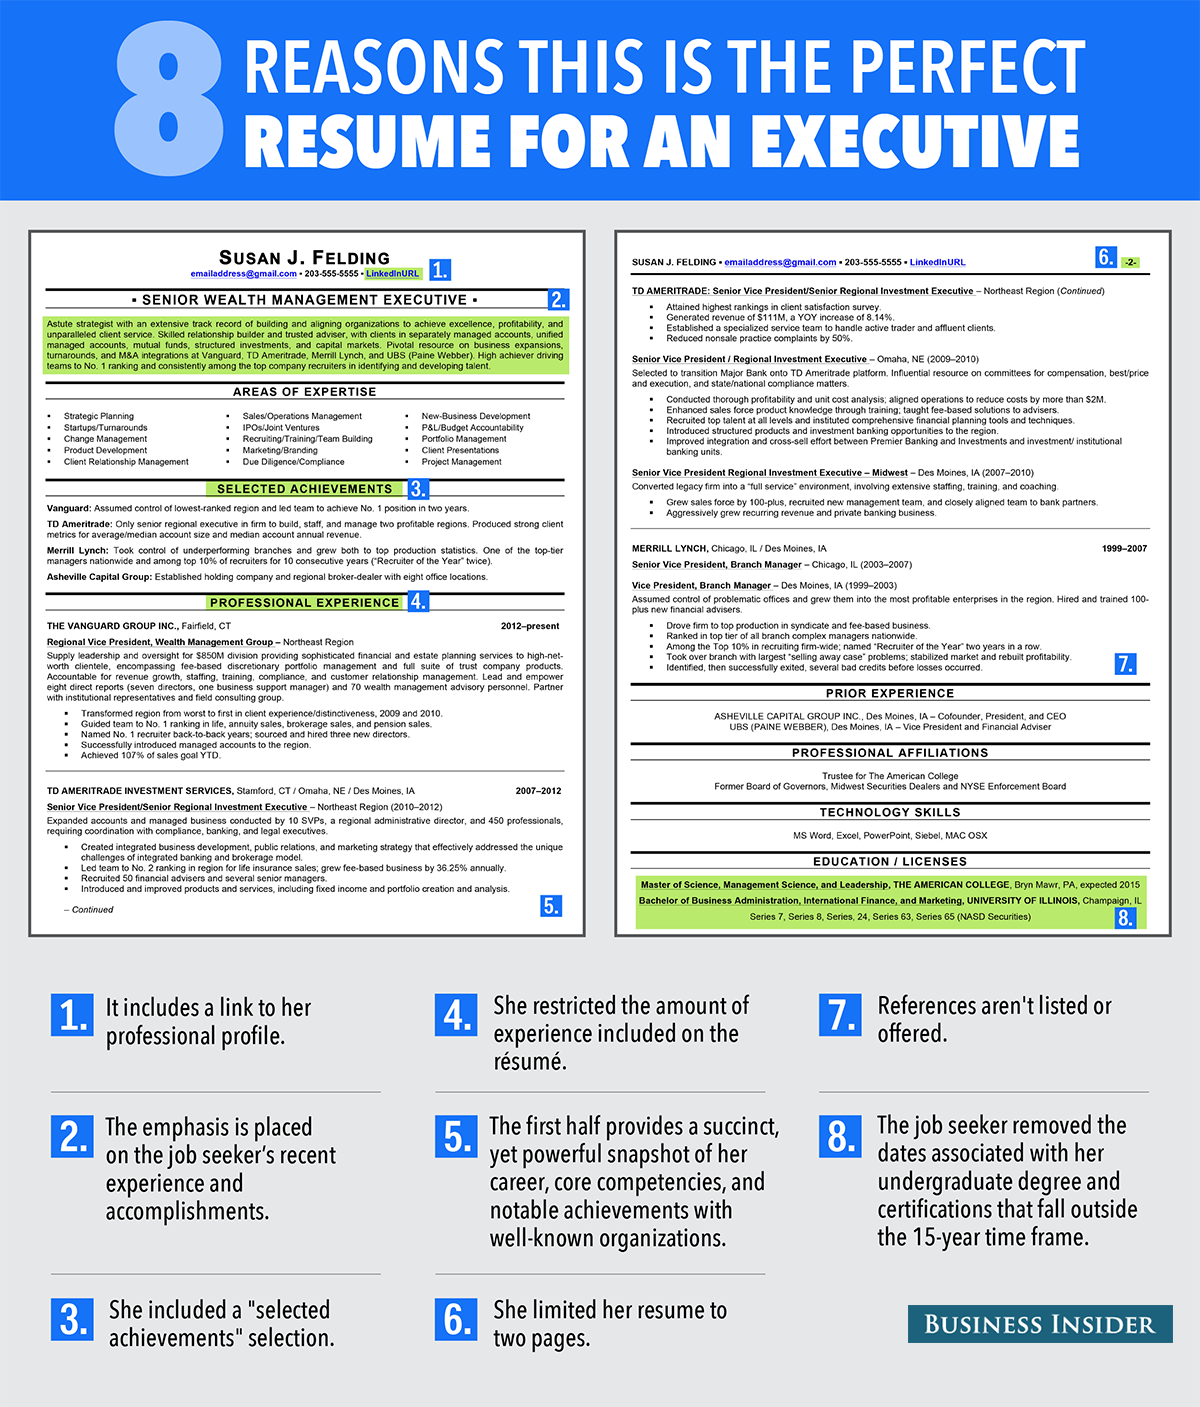 Marvelous 8 Reasons This Is An Ideal Résumé For Someone With A Lot Of Work Experience Within Ideal Resume